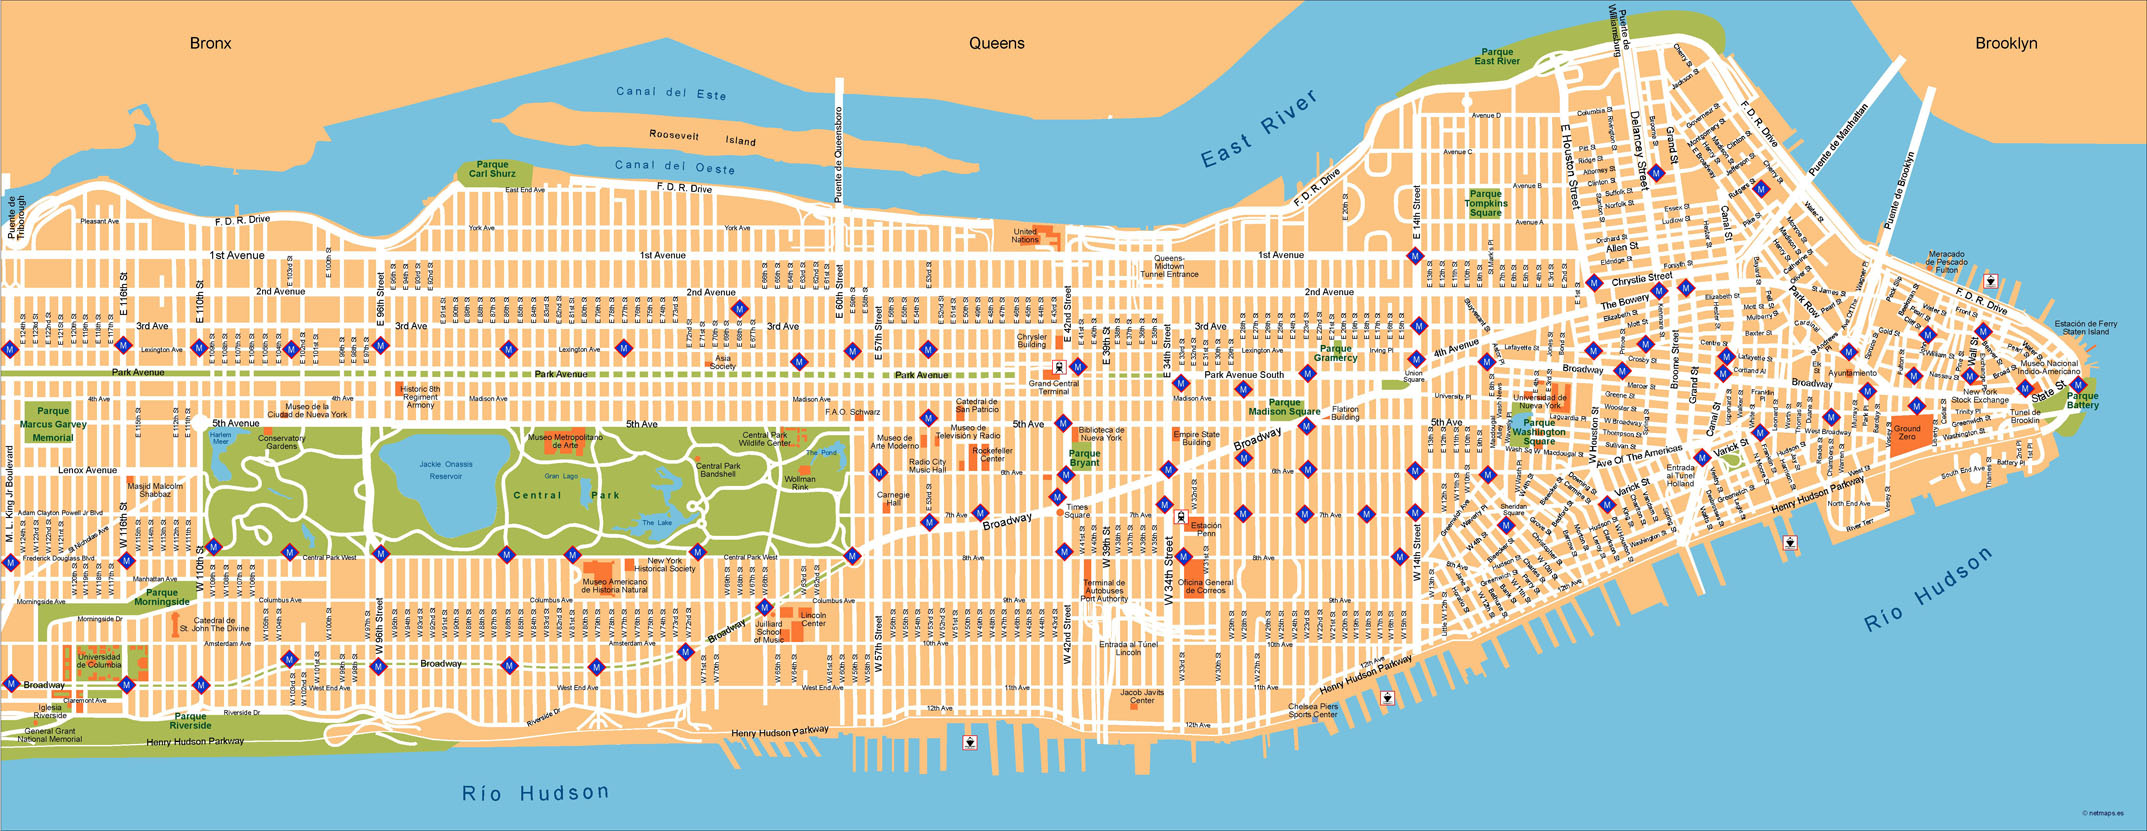 Free Map Of New York City.New York Illustrator Map